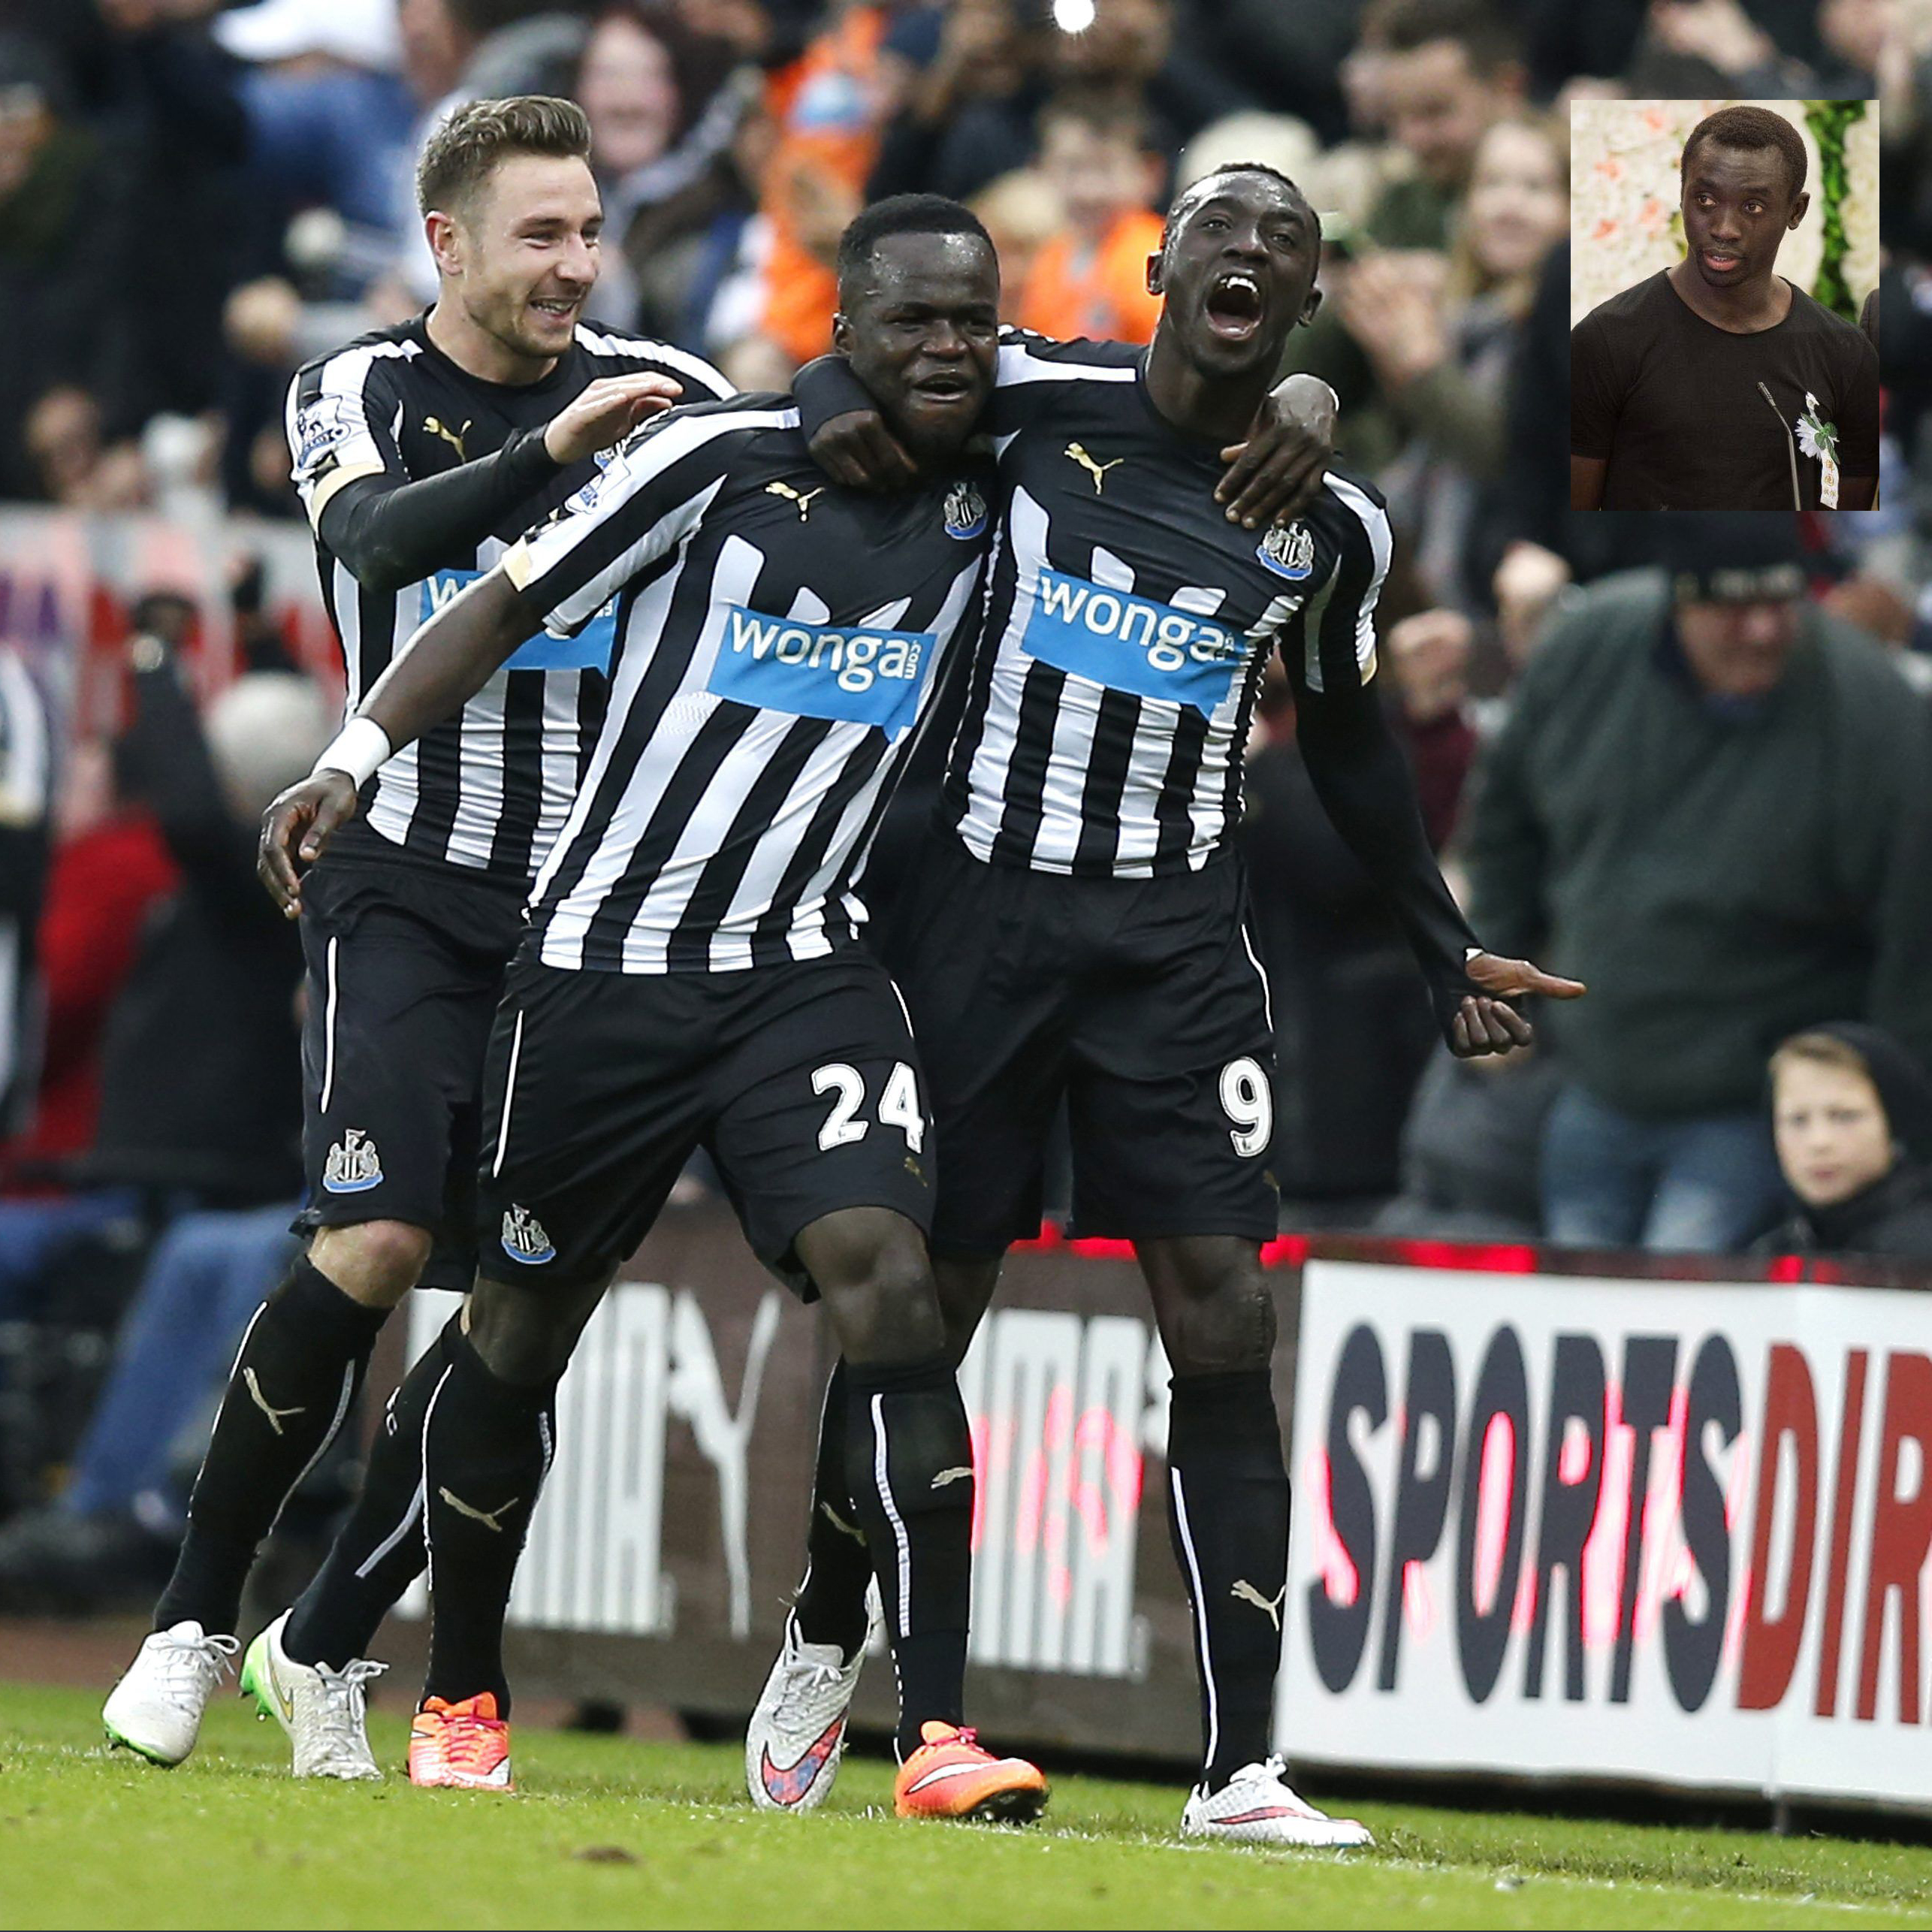 "Newcastle United's Papiss Demba Cisse (R) celebrates after scoring the opening goal with Cheik Ismael Tiote during their English Premier League soccer match against Chelsea at St James' Park in Newcastle, northern England December 6, 2014. REUTERS/Andrew Yates (BRITAIN - Tags: SPORT SOCCER) NO USE WITH UNAUTHORIZED AUDIO, VIDEO, DATA, FIXTURE LISTS, CLUB/LEAGUE LOGOS OR ""LIVE"" SERVICES. ONLINE IN-MATCH USE LIMITED TO 45 IMAGES, NO VIDEO EMULATION. NO USE IN BETTING, GAMES OR SINGLE CLUB/LEAGUE/PLAYER PUBLICATIONS. FOR EDITORIAL USE ONLY. NOT FOR SALE FOR MARKETING OR ADVERTISING CAMPAIGNS"